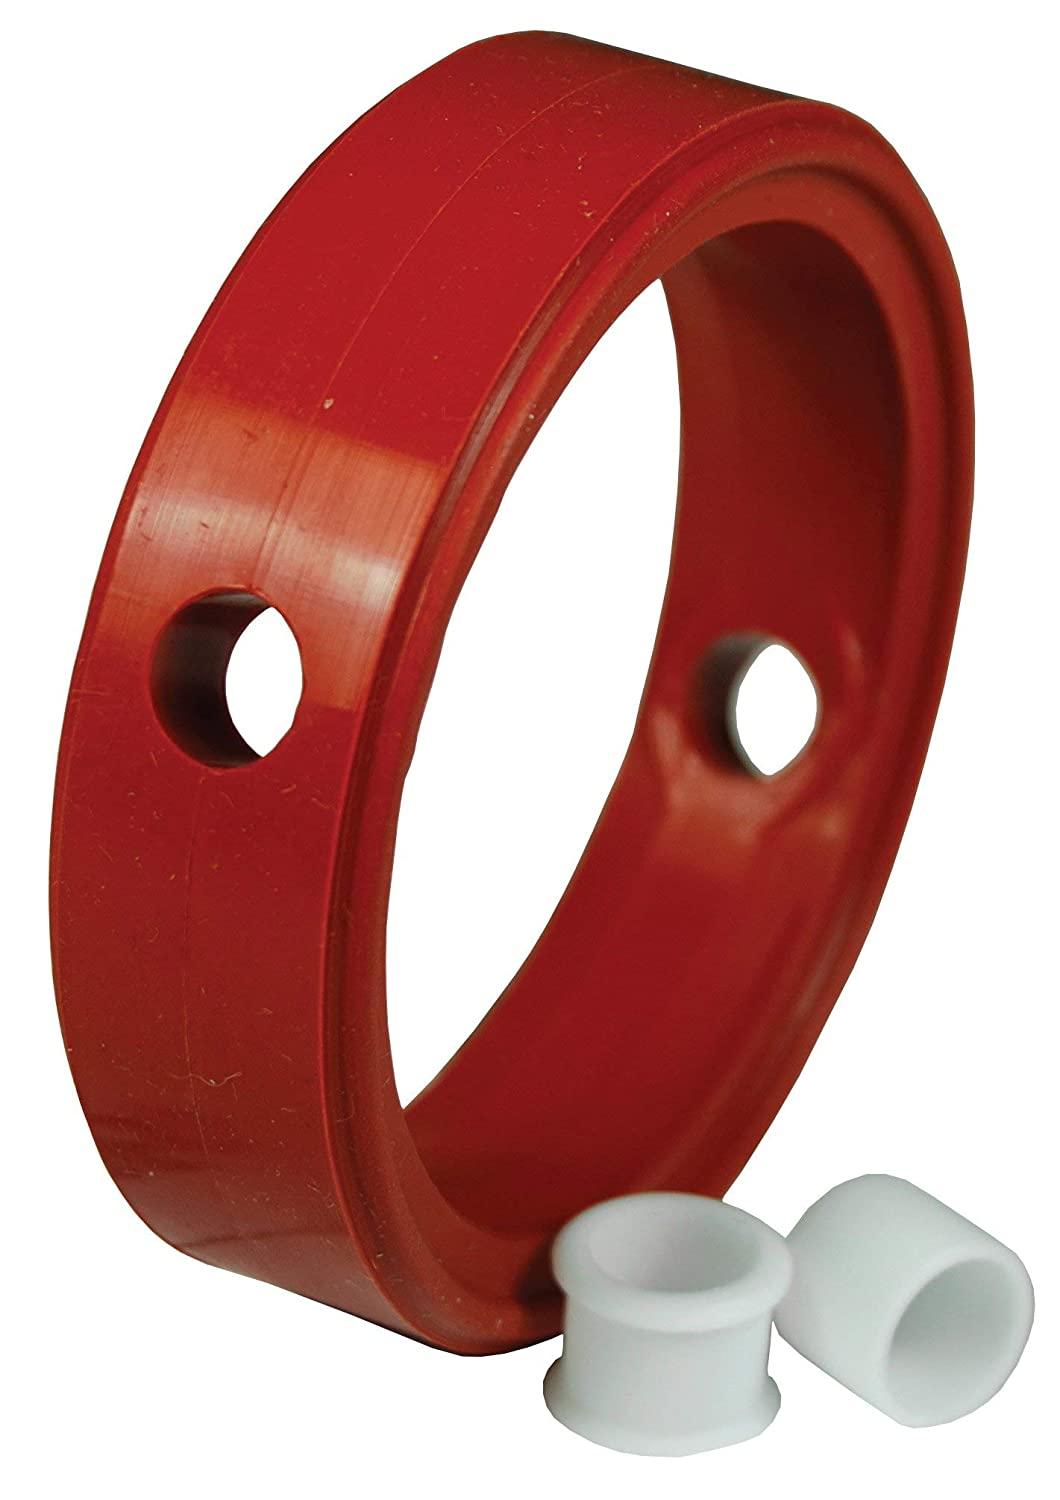 1 Dixon B5102-RKS200 Red Repait Kit Bushings 2 ID B5102 Includes: 2 Silicone Seat and